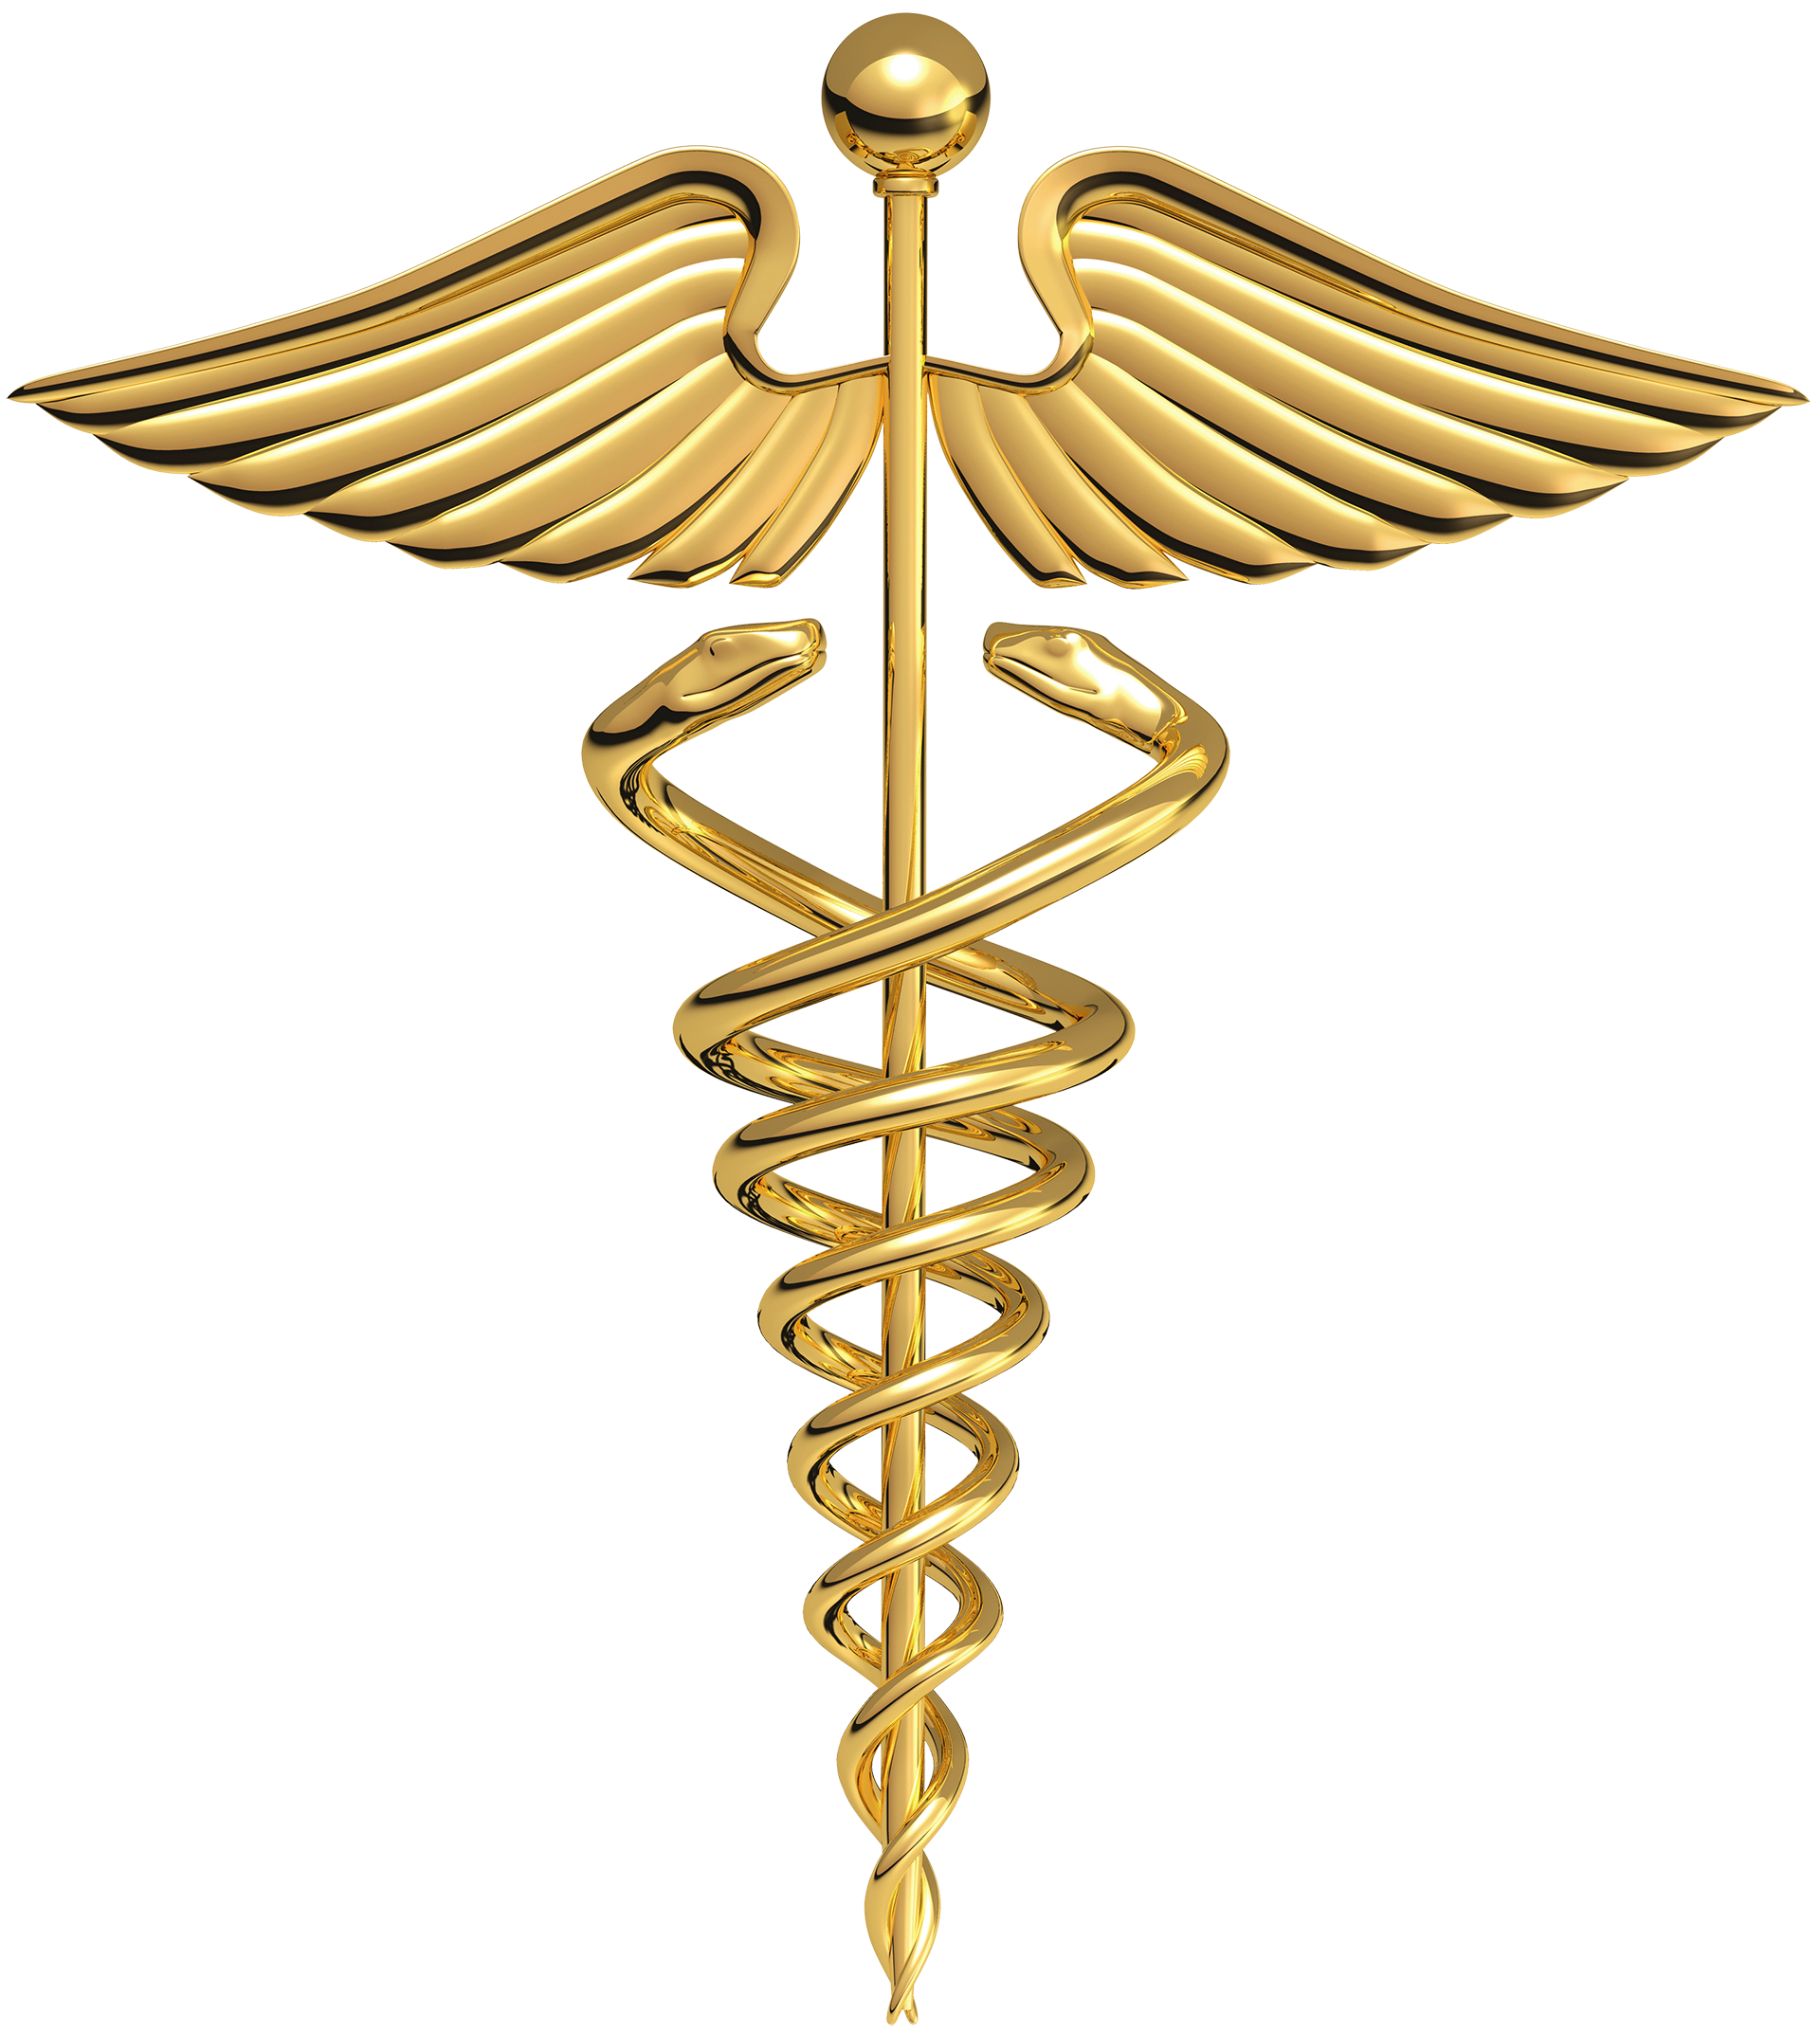 Caduceus - GOOD HEALTH - Messenger of the gods - The gods ARE NEUTRAL, SERIOUS, CRITICAL AND GOOD - COMPASSION - MERCY - BENEVOLENCE - HUMANENESS - GOD'S WILL - Most Compassionate, Most Merciful, Most Benevolent, Most Humane - BE HUMANE - SEEK THE TRUTH - SEEK JUSTICE - BE KIND - BE GENTLE - DO NO HARM - DO NOT HATE - DO NOT FEAR - FEAR NOT - BE NOT AFRAID - CAUSE NO PAIN - BE AS PAINLESS AS POSSIBLE - CAUSE NO FEAR - DO NOT BE SCARY - DO NOT PUNISH - DO NOT MAKE THREATS - DO NOT BE COERCIVE - BE PERMISSIVE - BE TOLERANT - USE BIRTH CONTROL - PERMIT DIVORCE - EMPATHY IS CRITICAL - RESPECT FOR THE DIGNITY OF ALL HUMAN BEINGS IS CRITICAL - FREE UNIVERSAL HEALTH CARE WITH ANY DOCTOR ANYWHERE - FREE UNIVERSAL EDUCATION - UNIVERSAL HOME OWNERSHIP